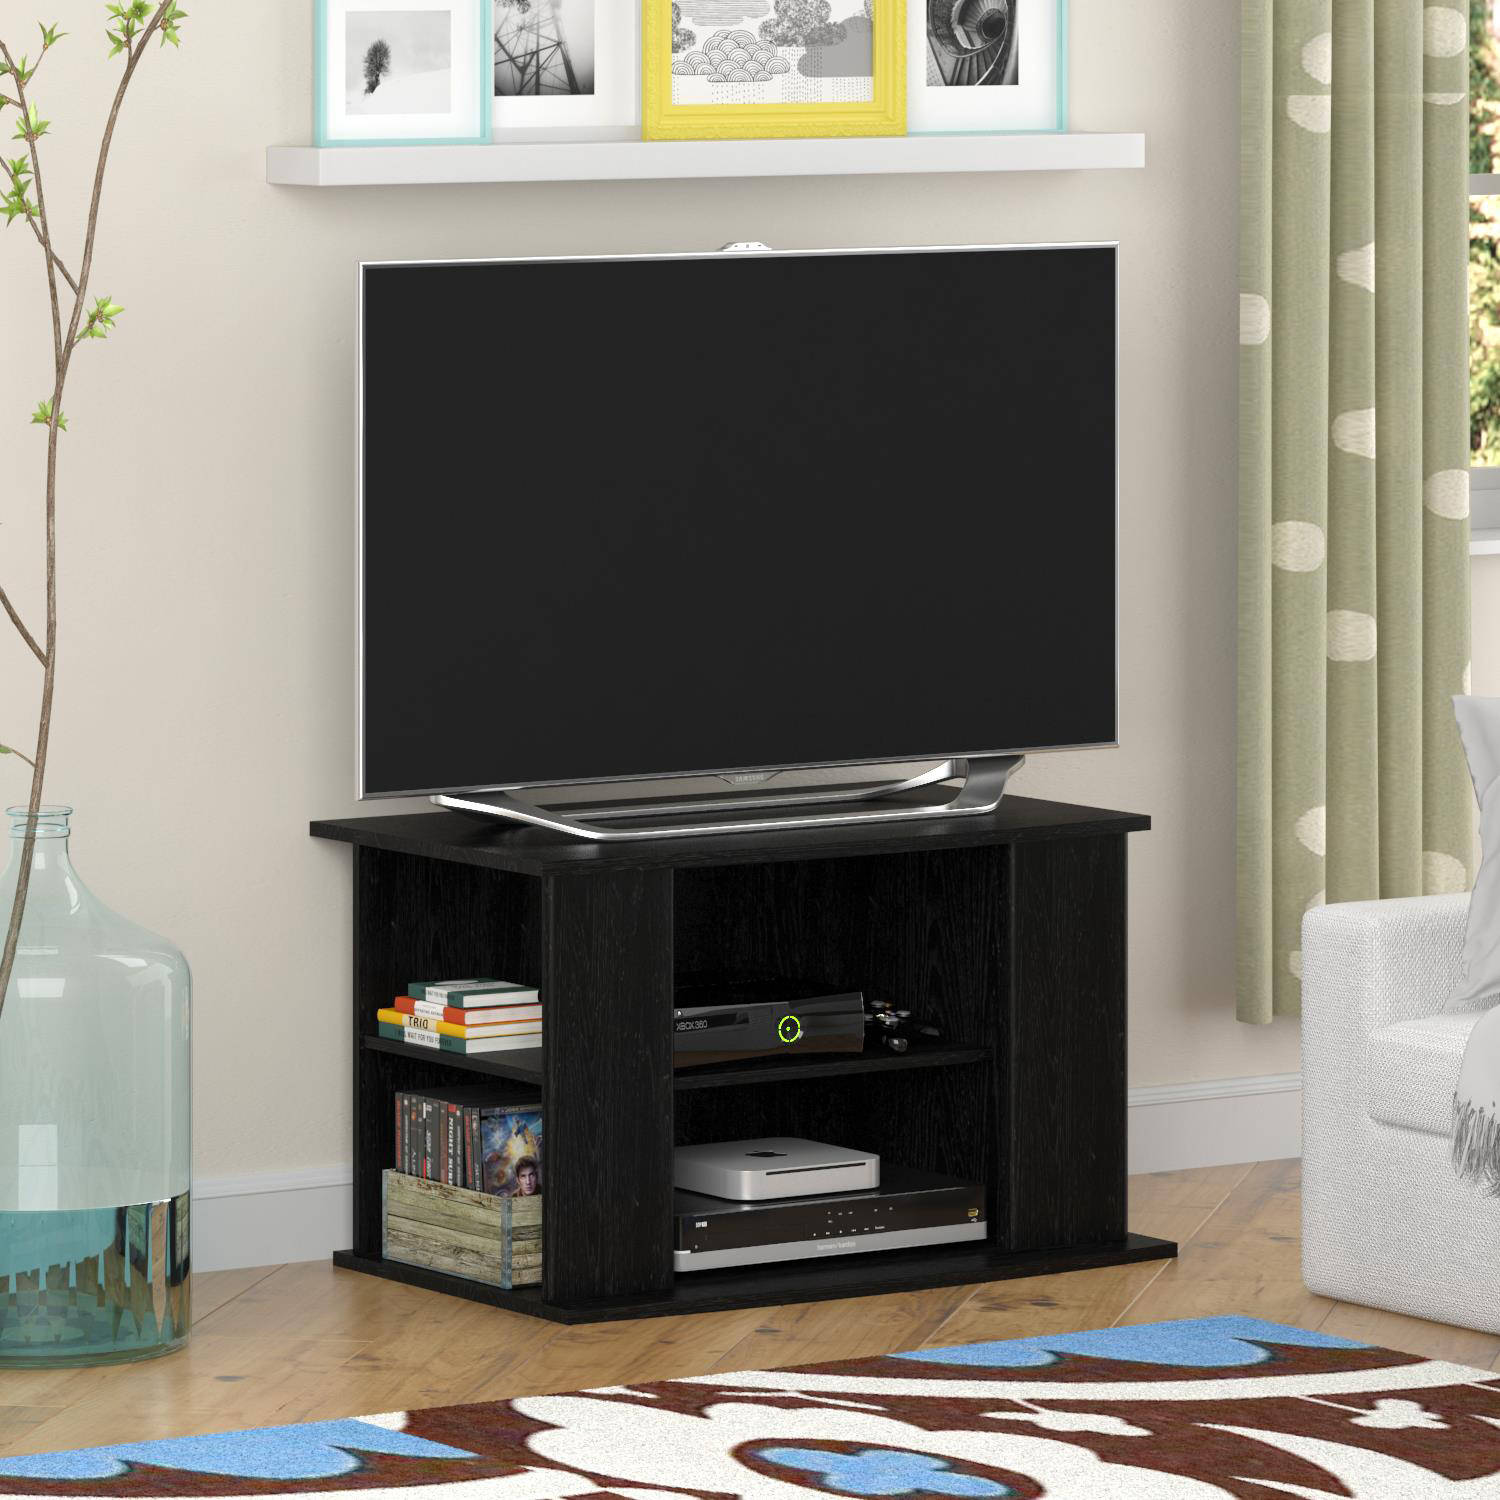 """Mainstays TV Stand with Side Storage for TVs up to 32"""", Multiple Colors"""